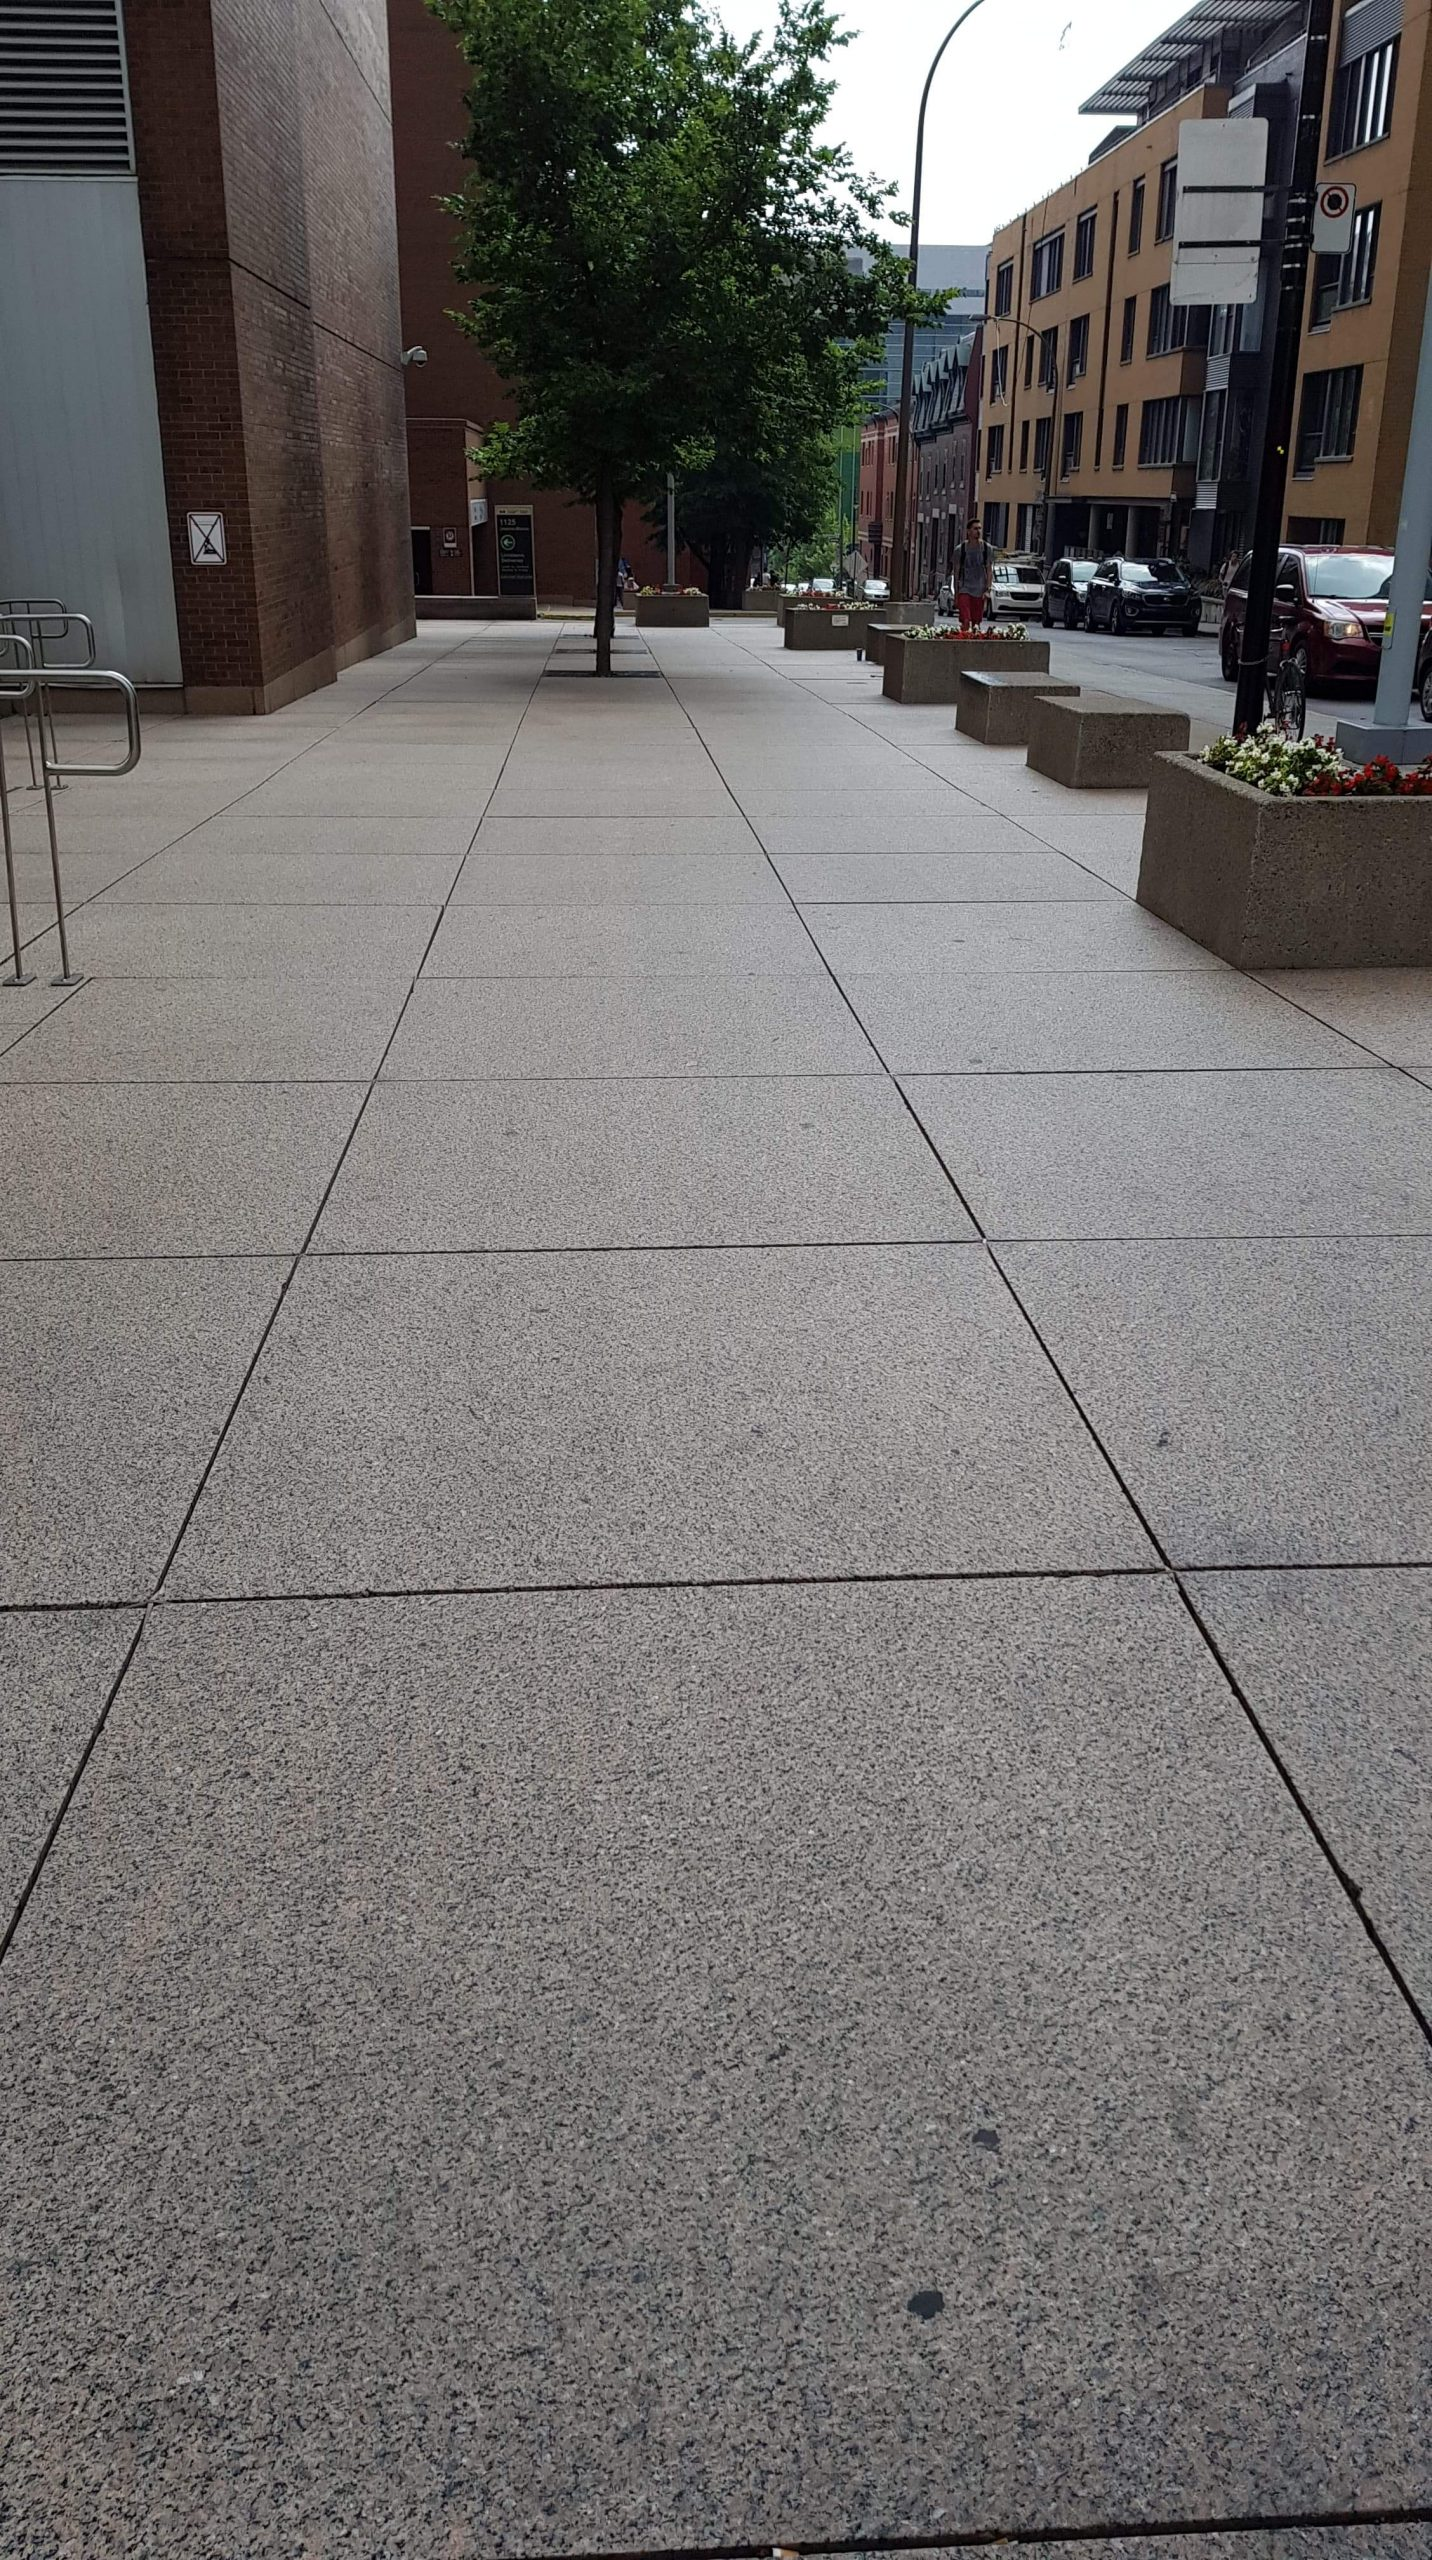 Megapad Paving Pedestals with pavement slabs after 5 years